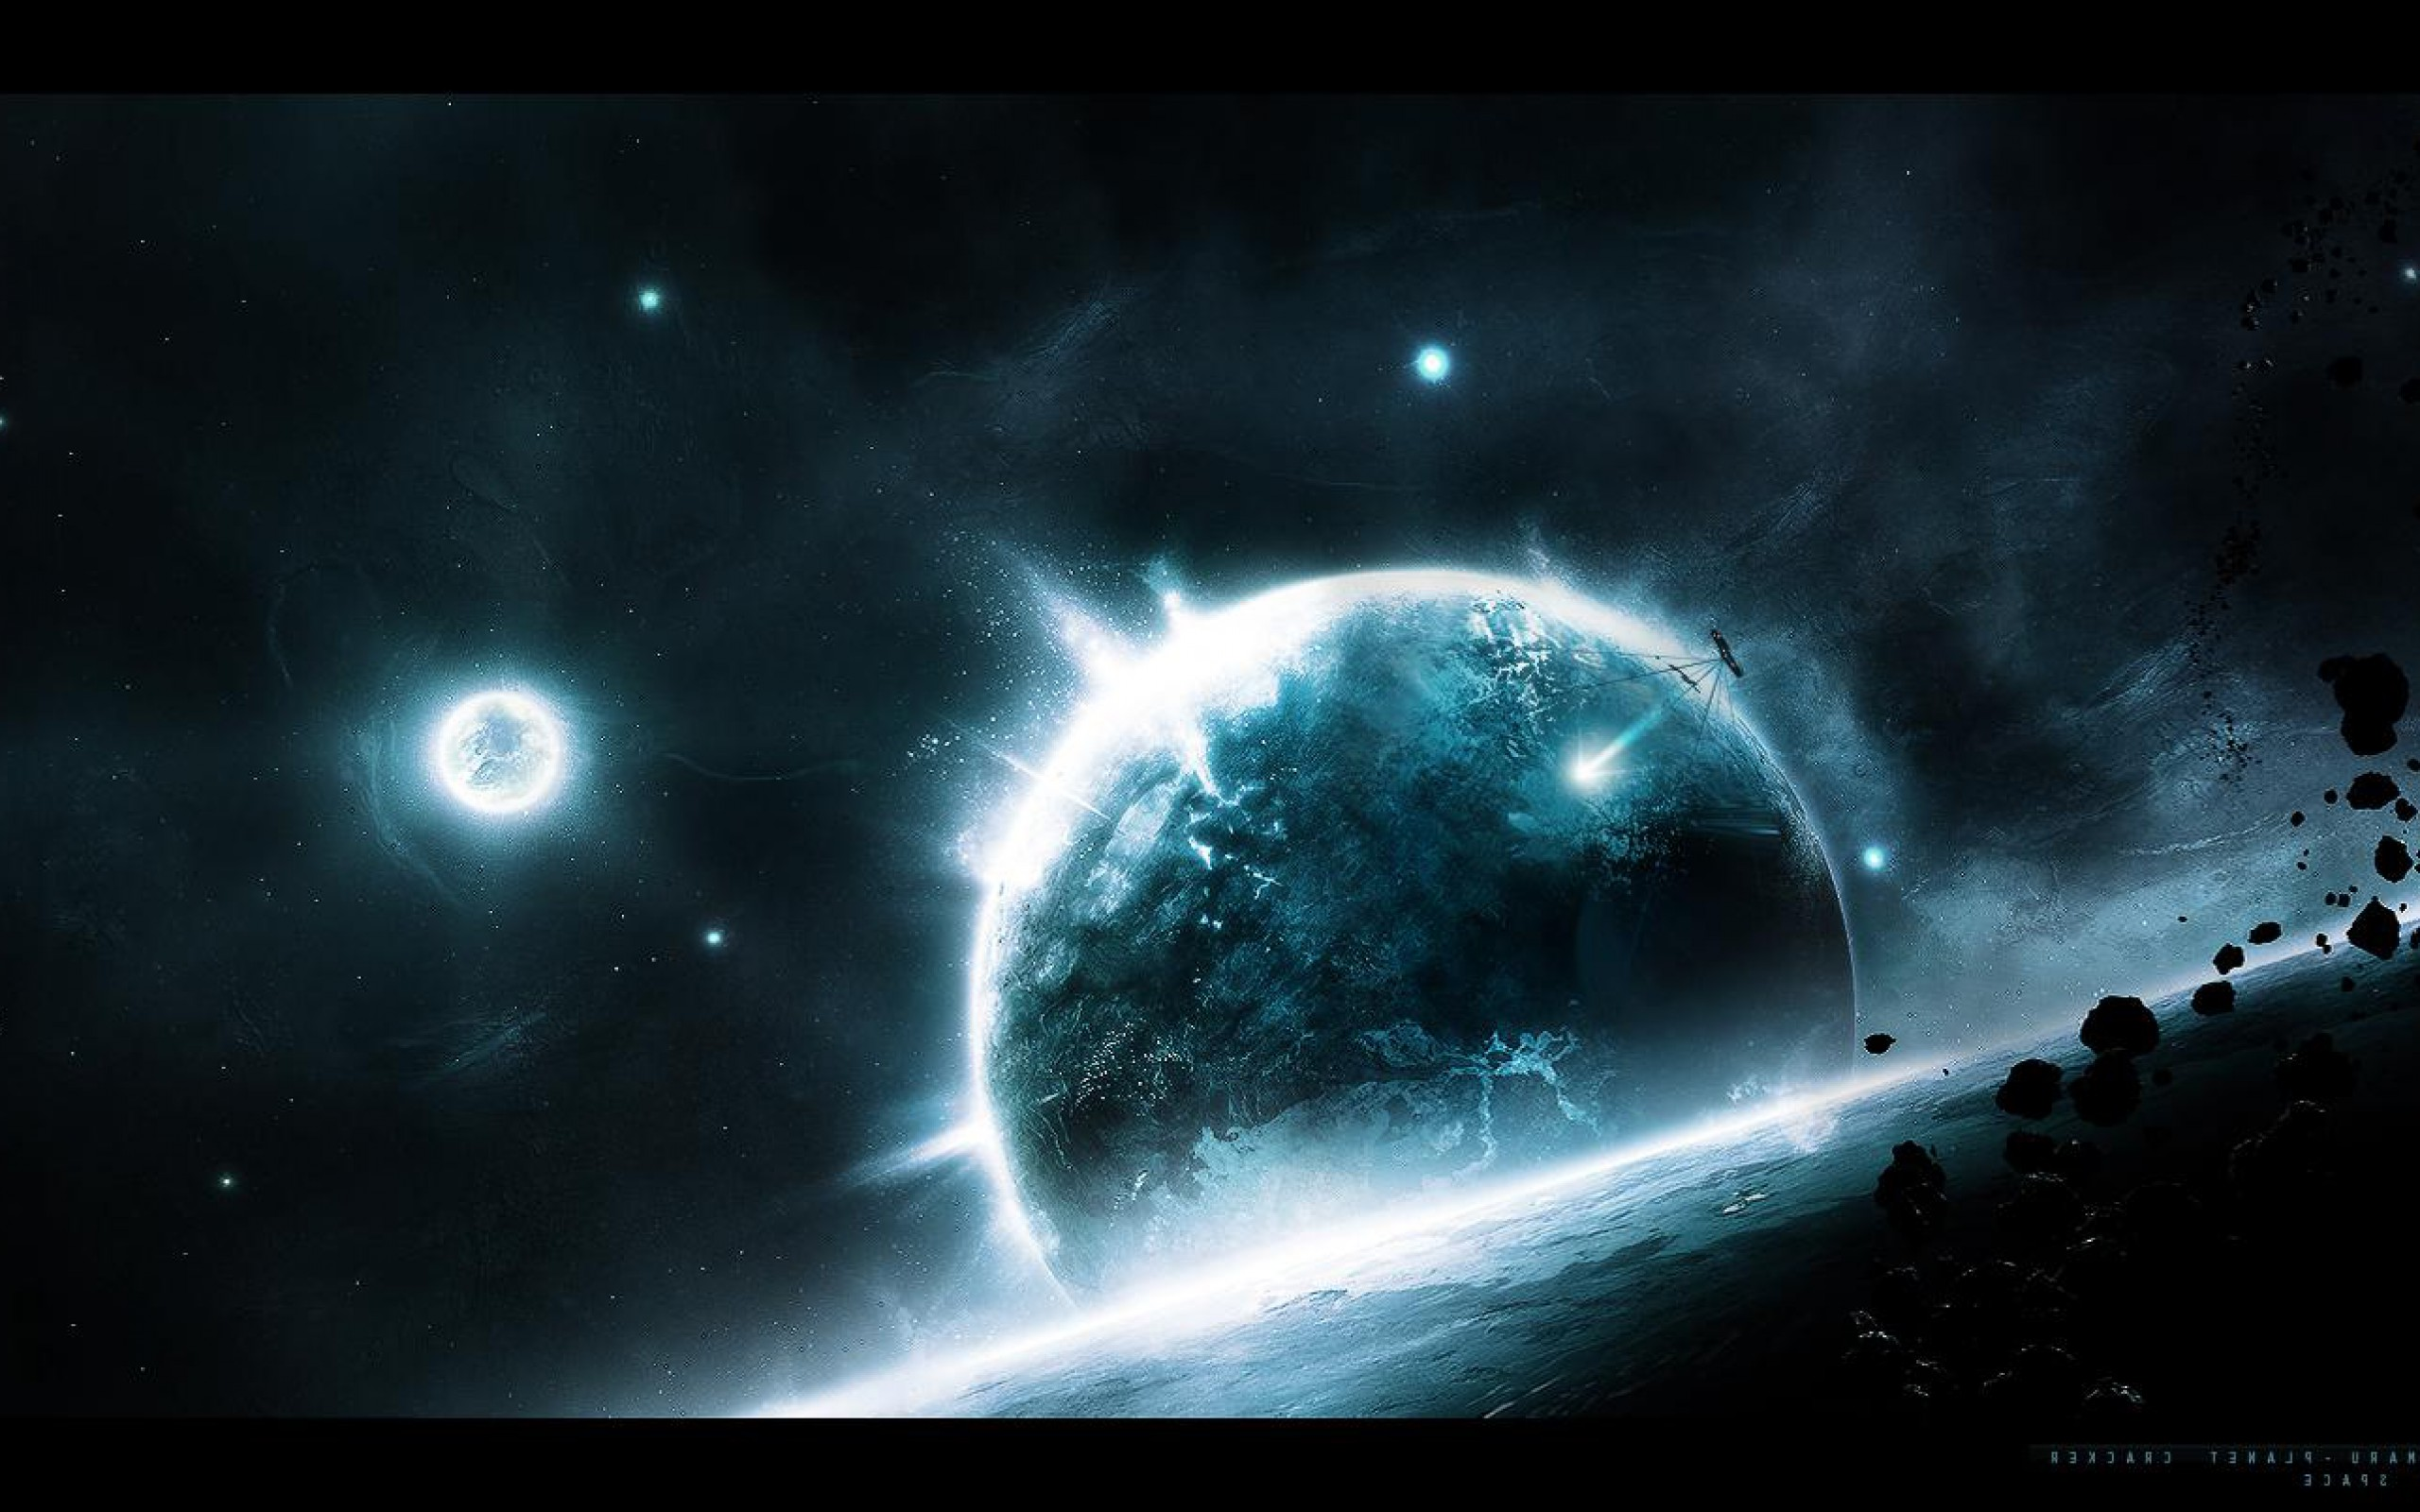 Hd sci fi wallpaper 1104880 for Sci fi background